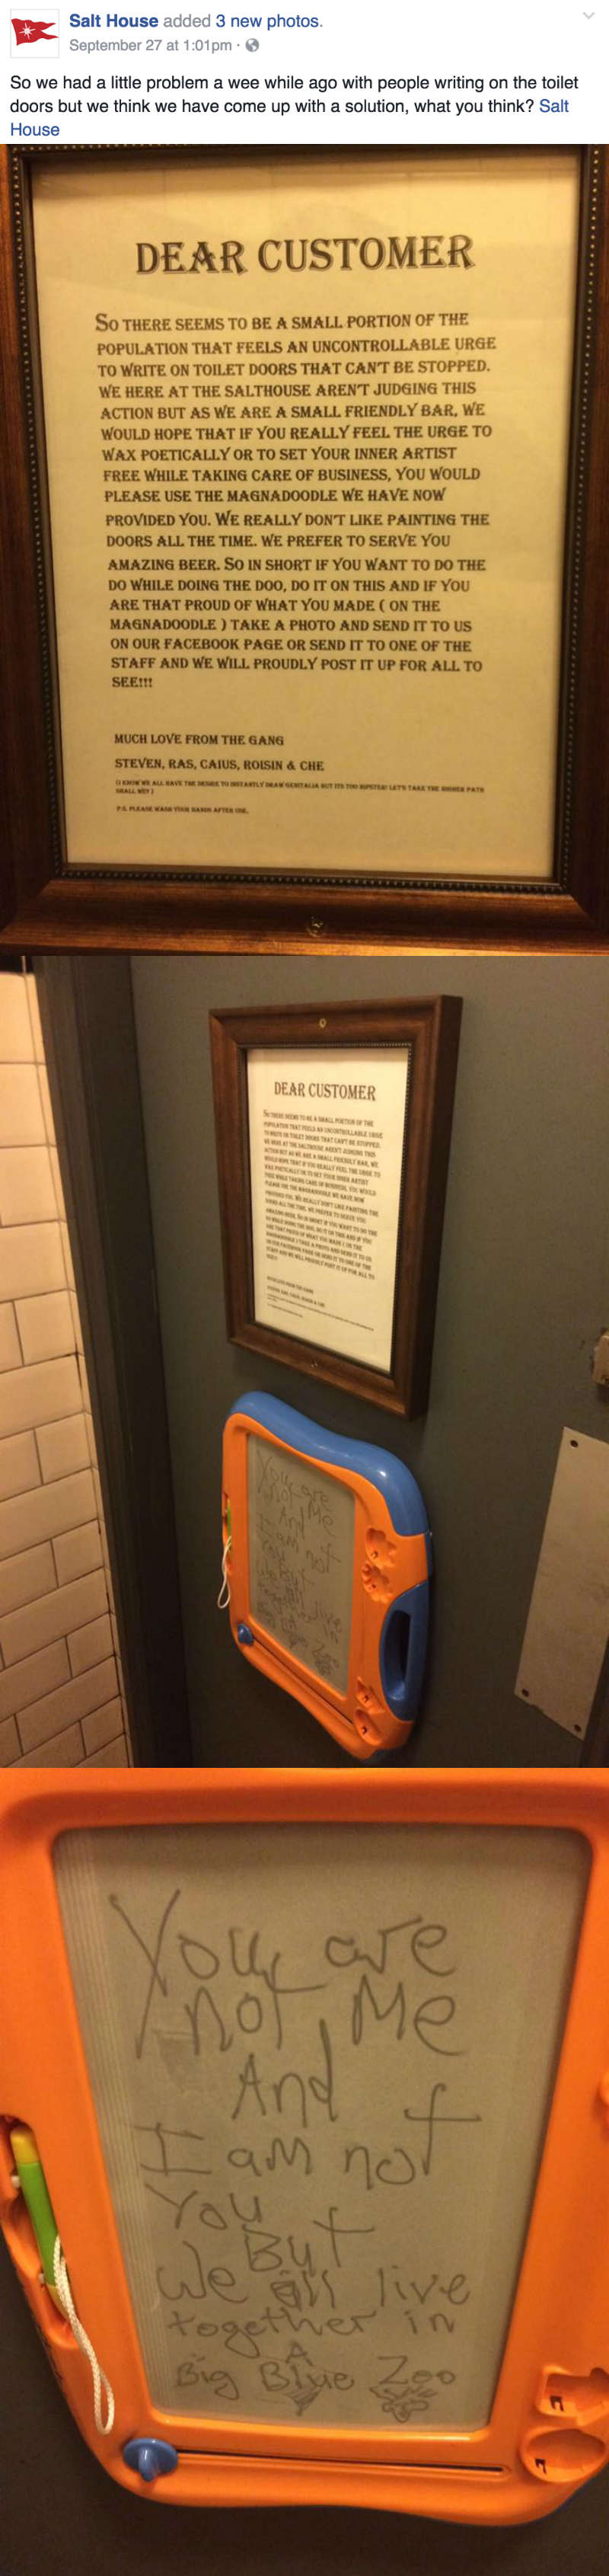 win image irish bar solves bathroom graffiti solution with child's toy